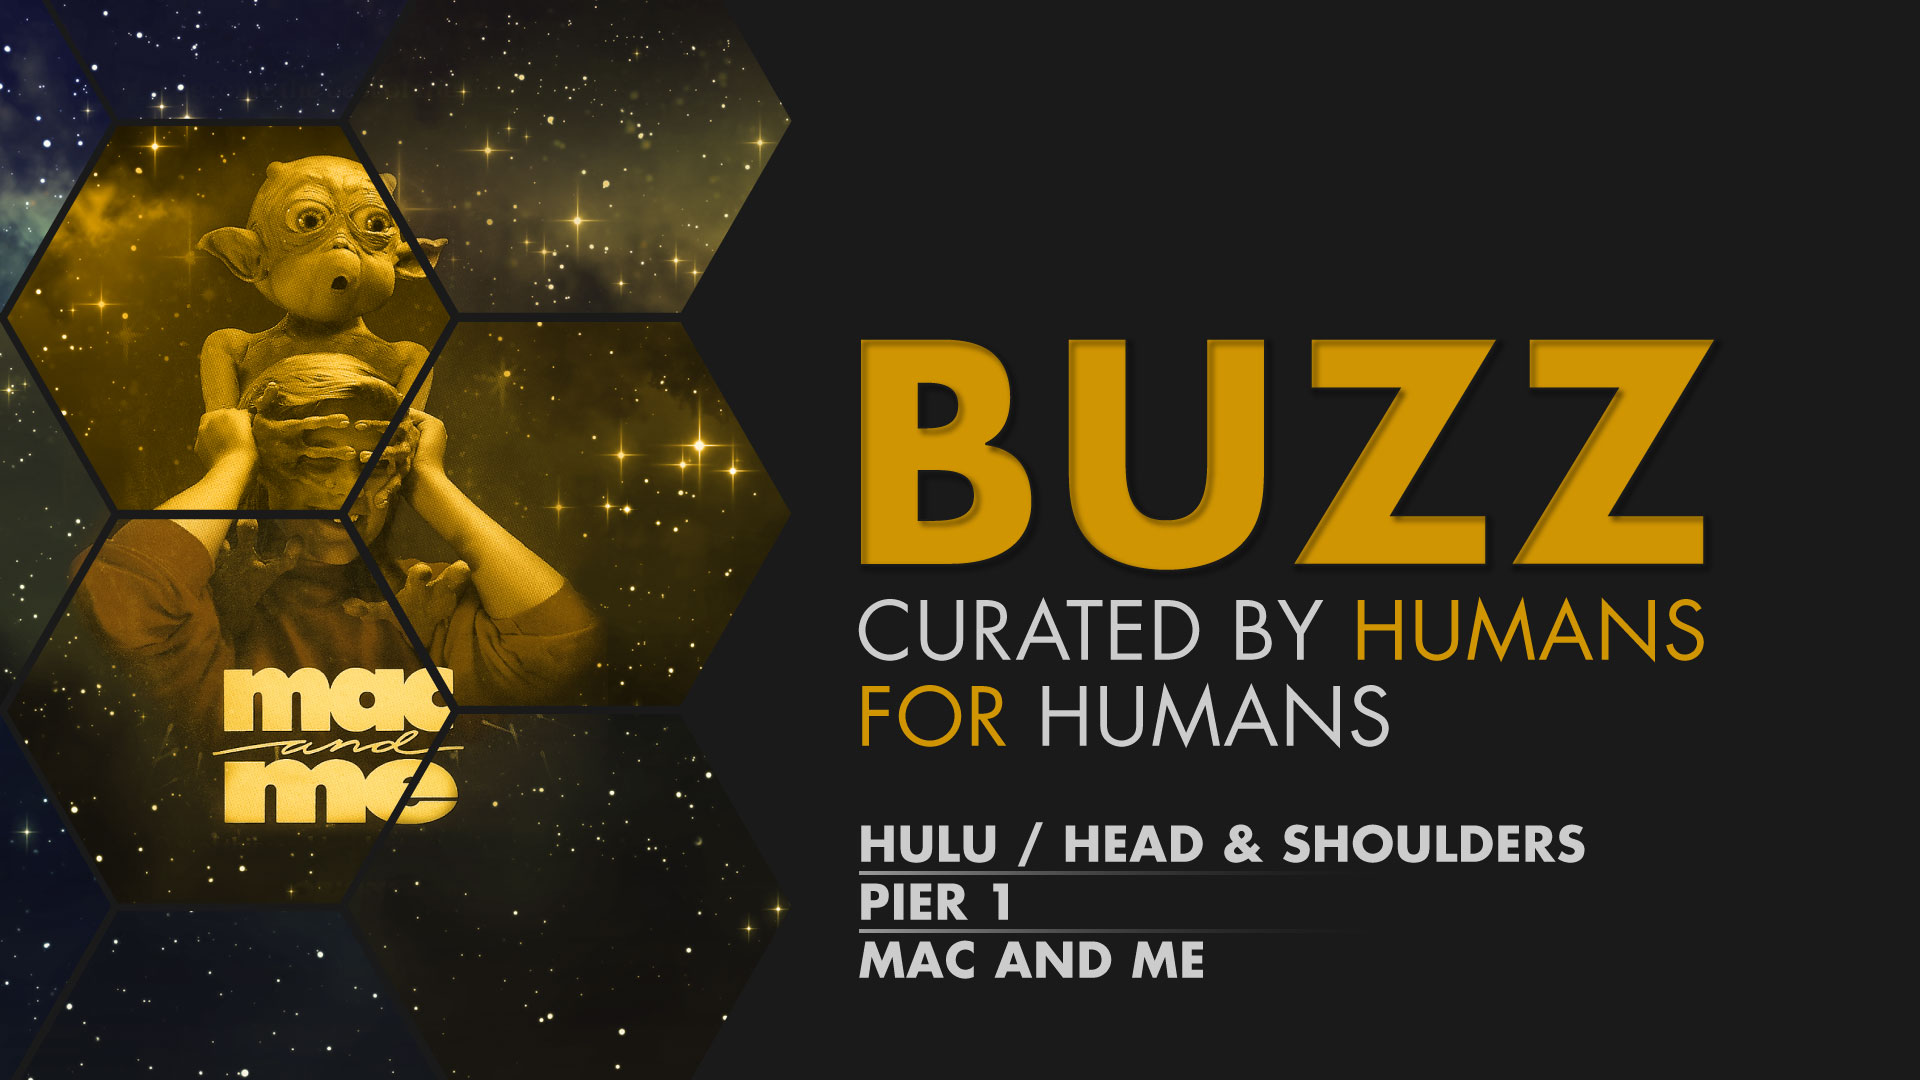 Weekly Buzz: Hulu, Pier 1, & Mac and Me – Speaking Human